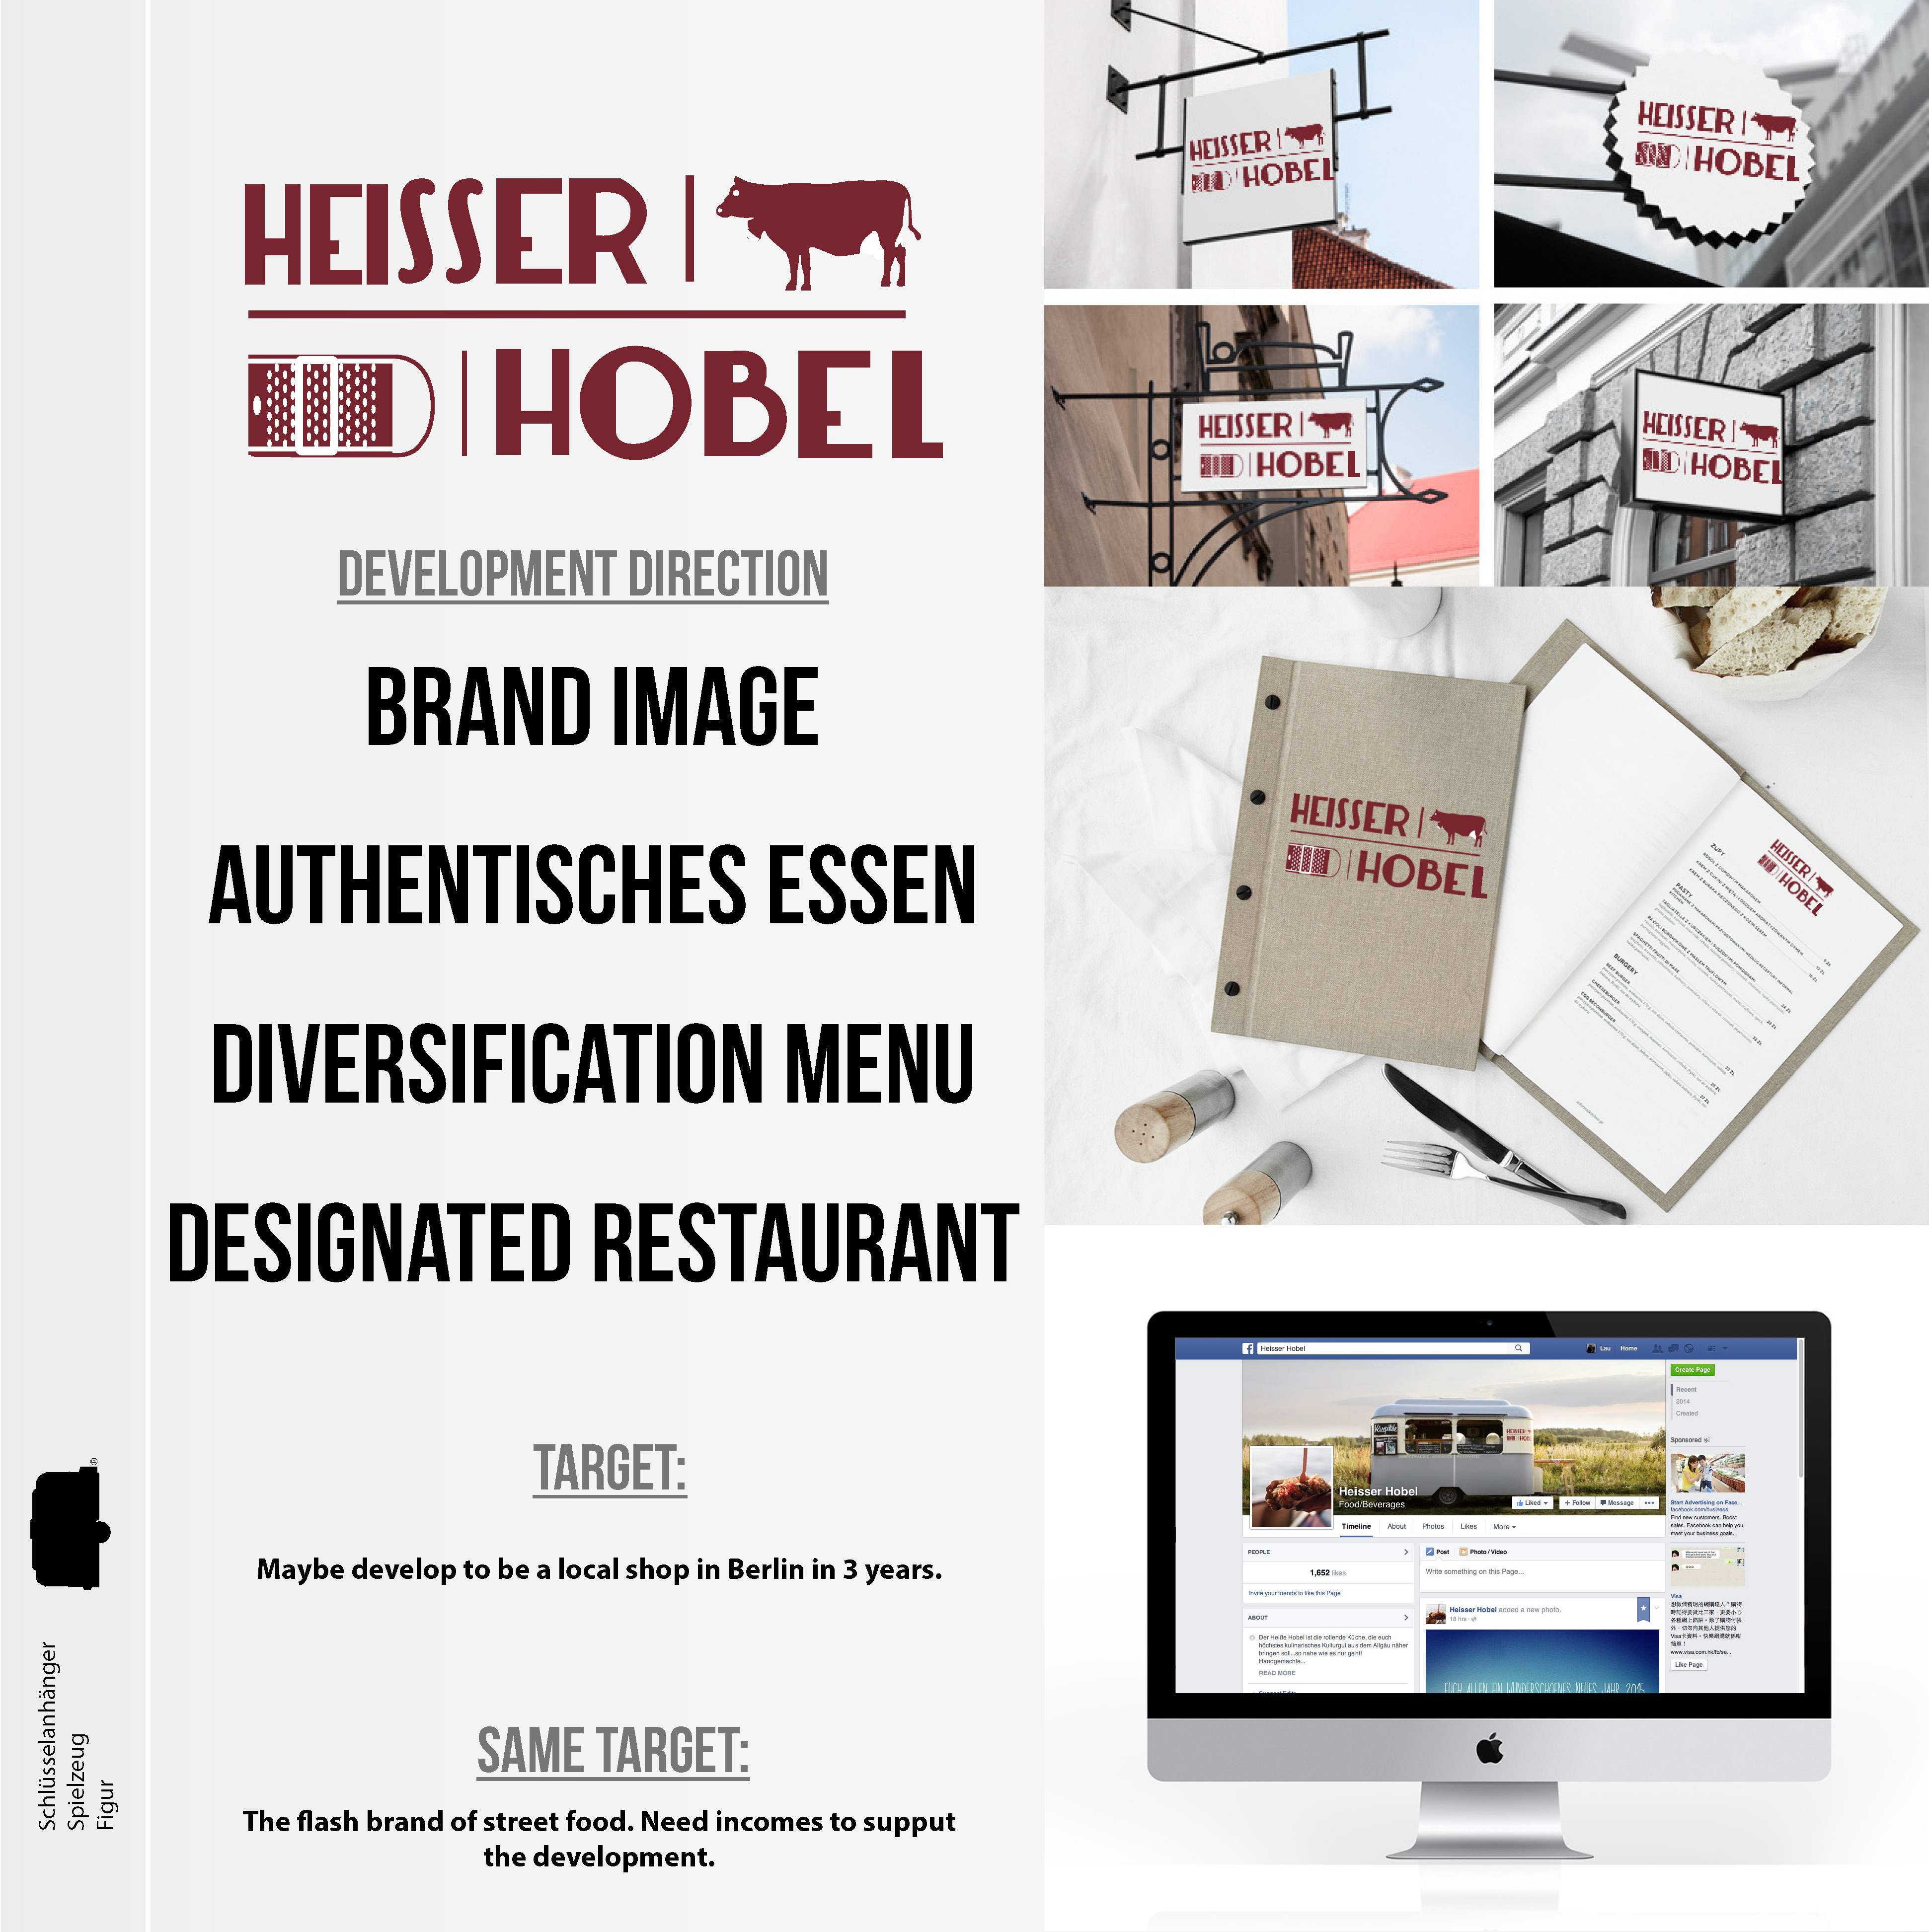 Darlie Lau Studio - HEISSER HOBEL PRODUCT BOOK